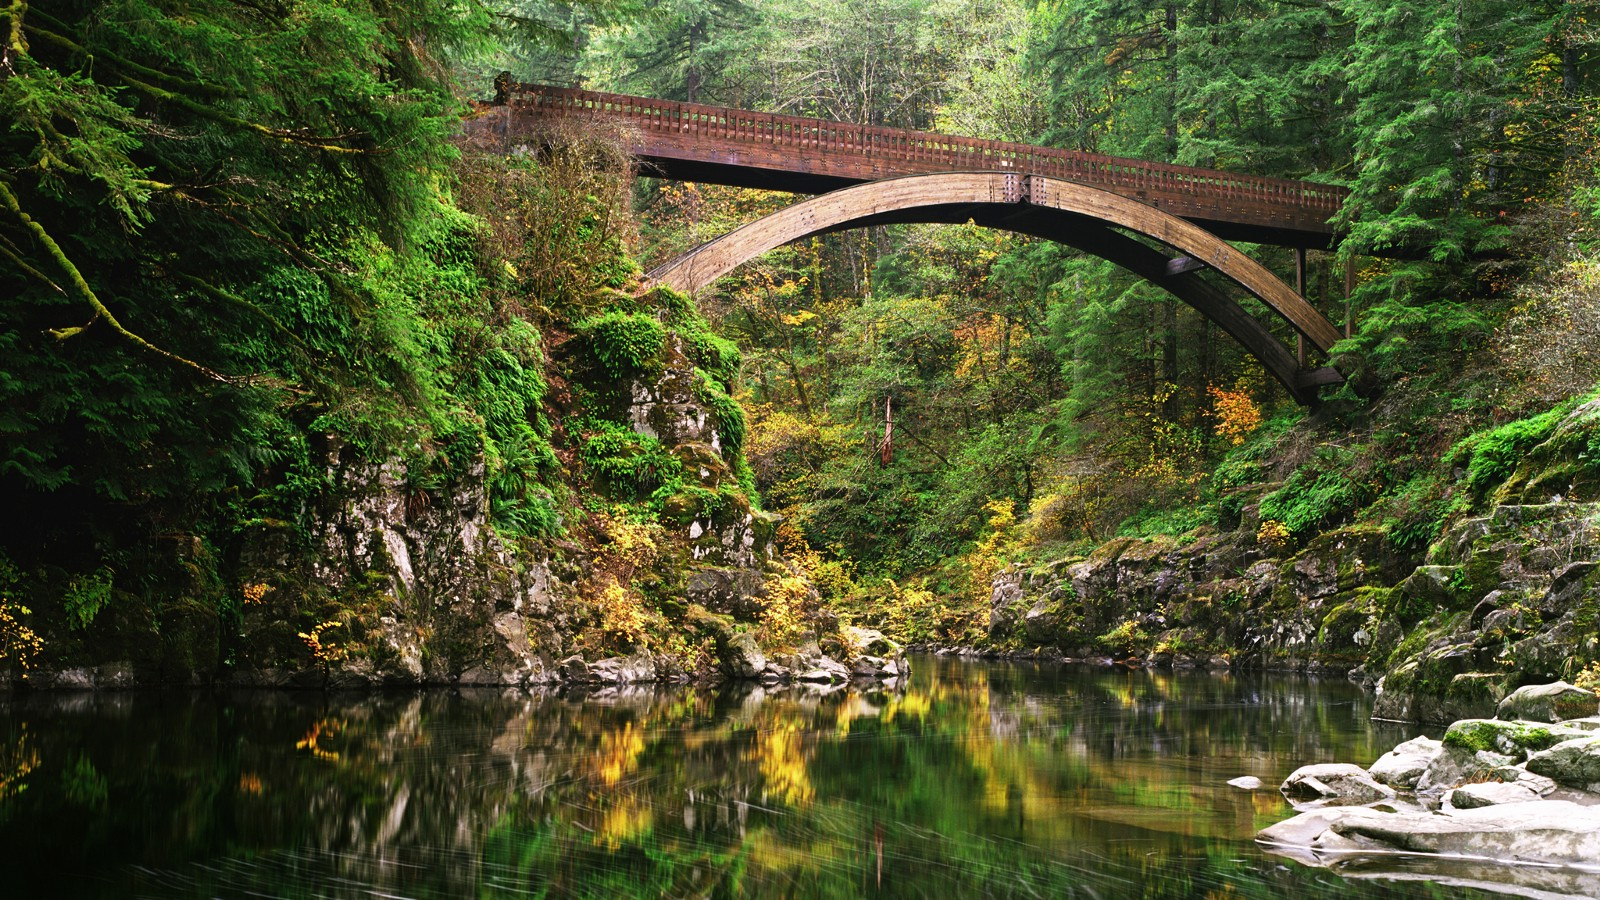 Curved wooden footbridge, Washington